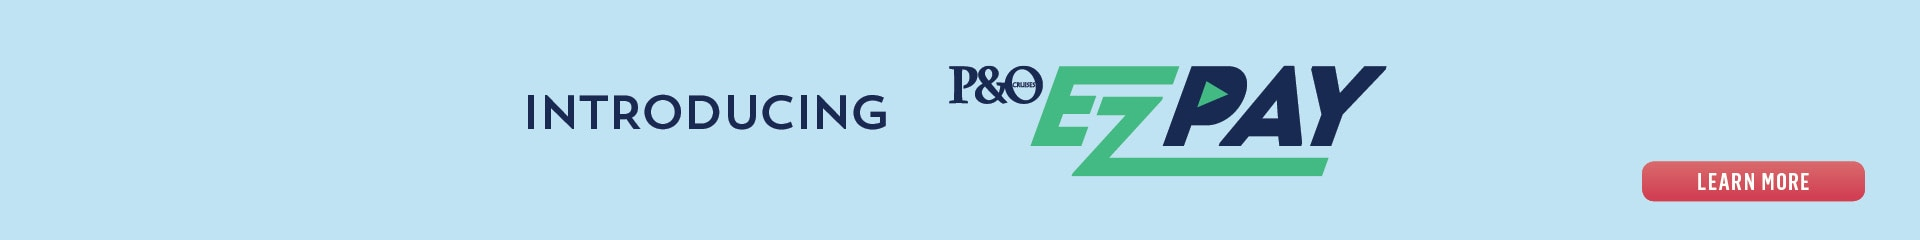 Introducing P&O EzPay. Learn More